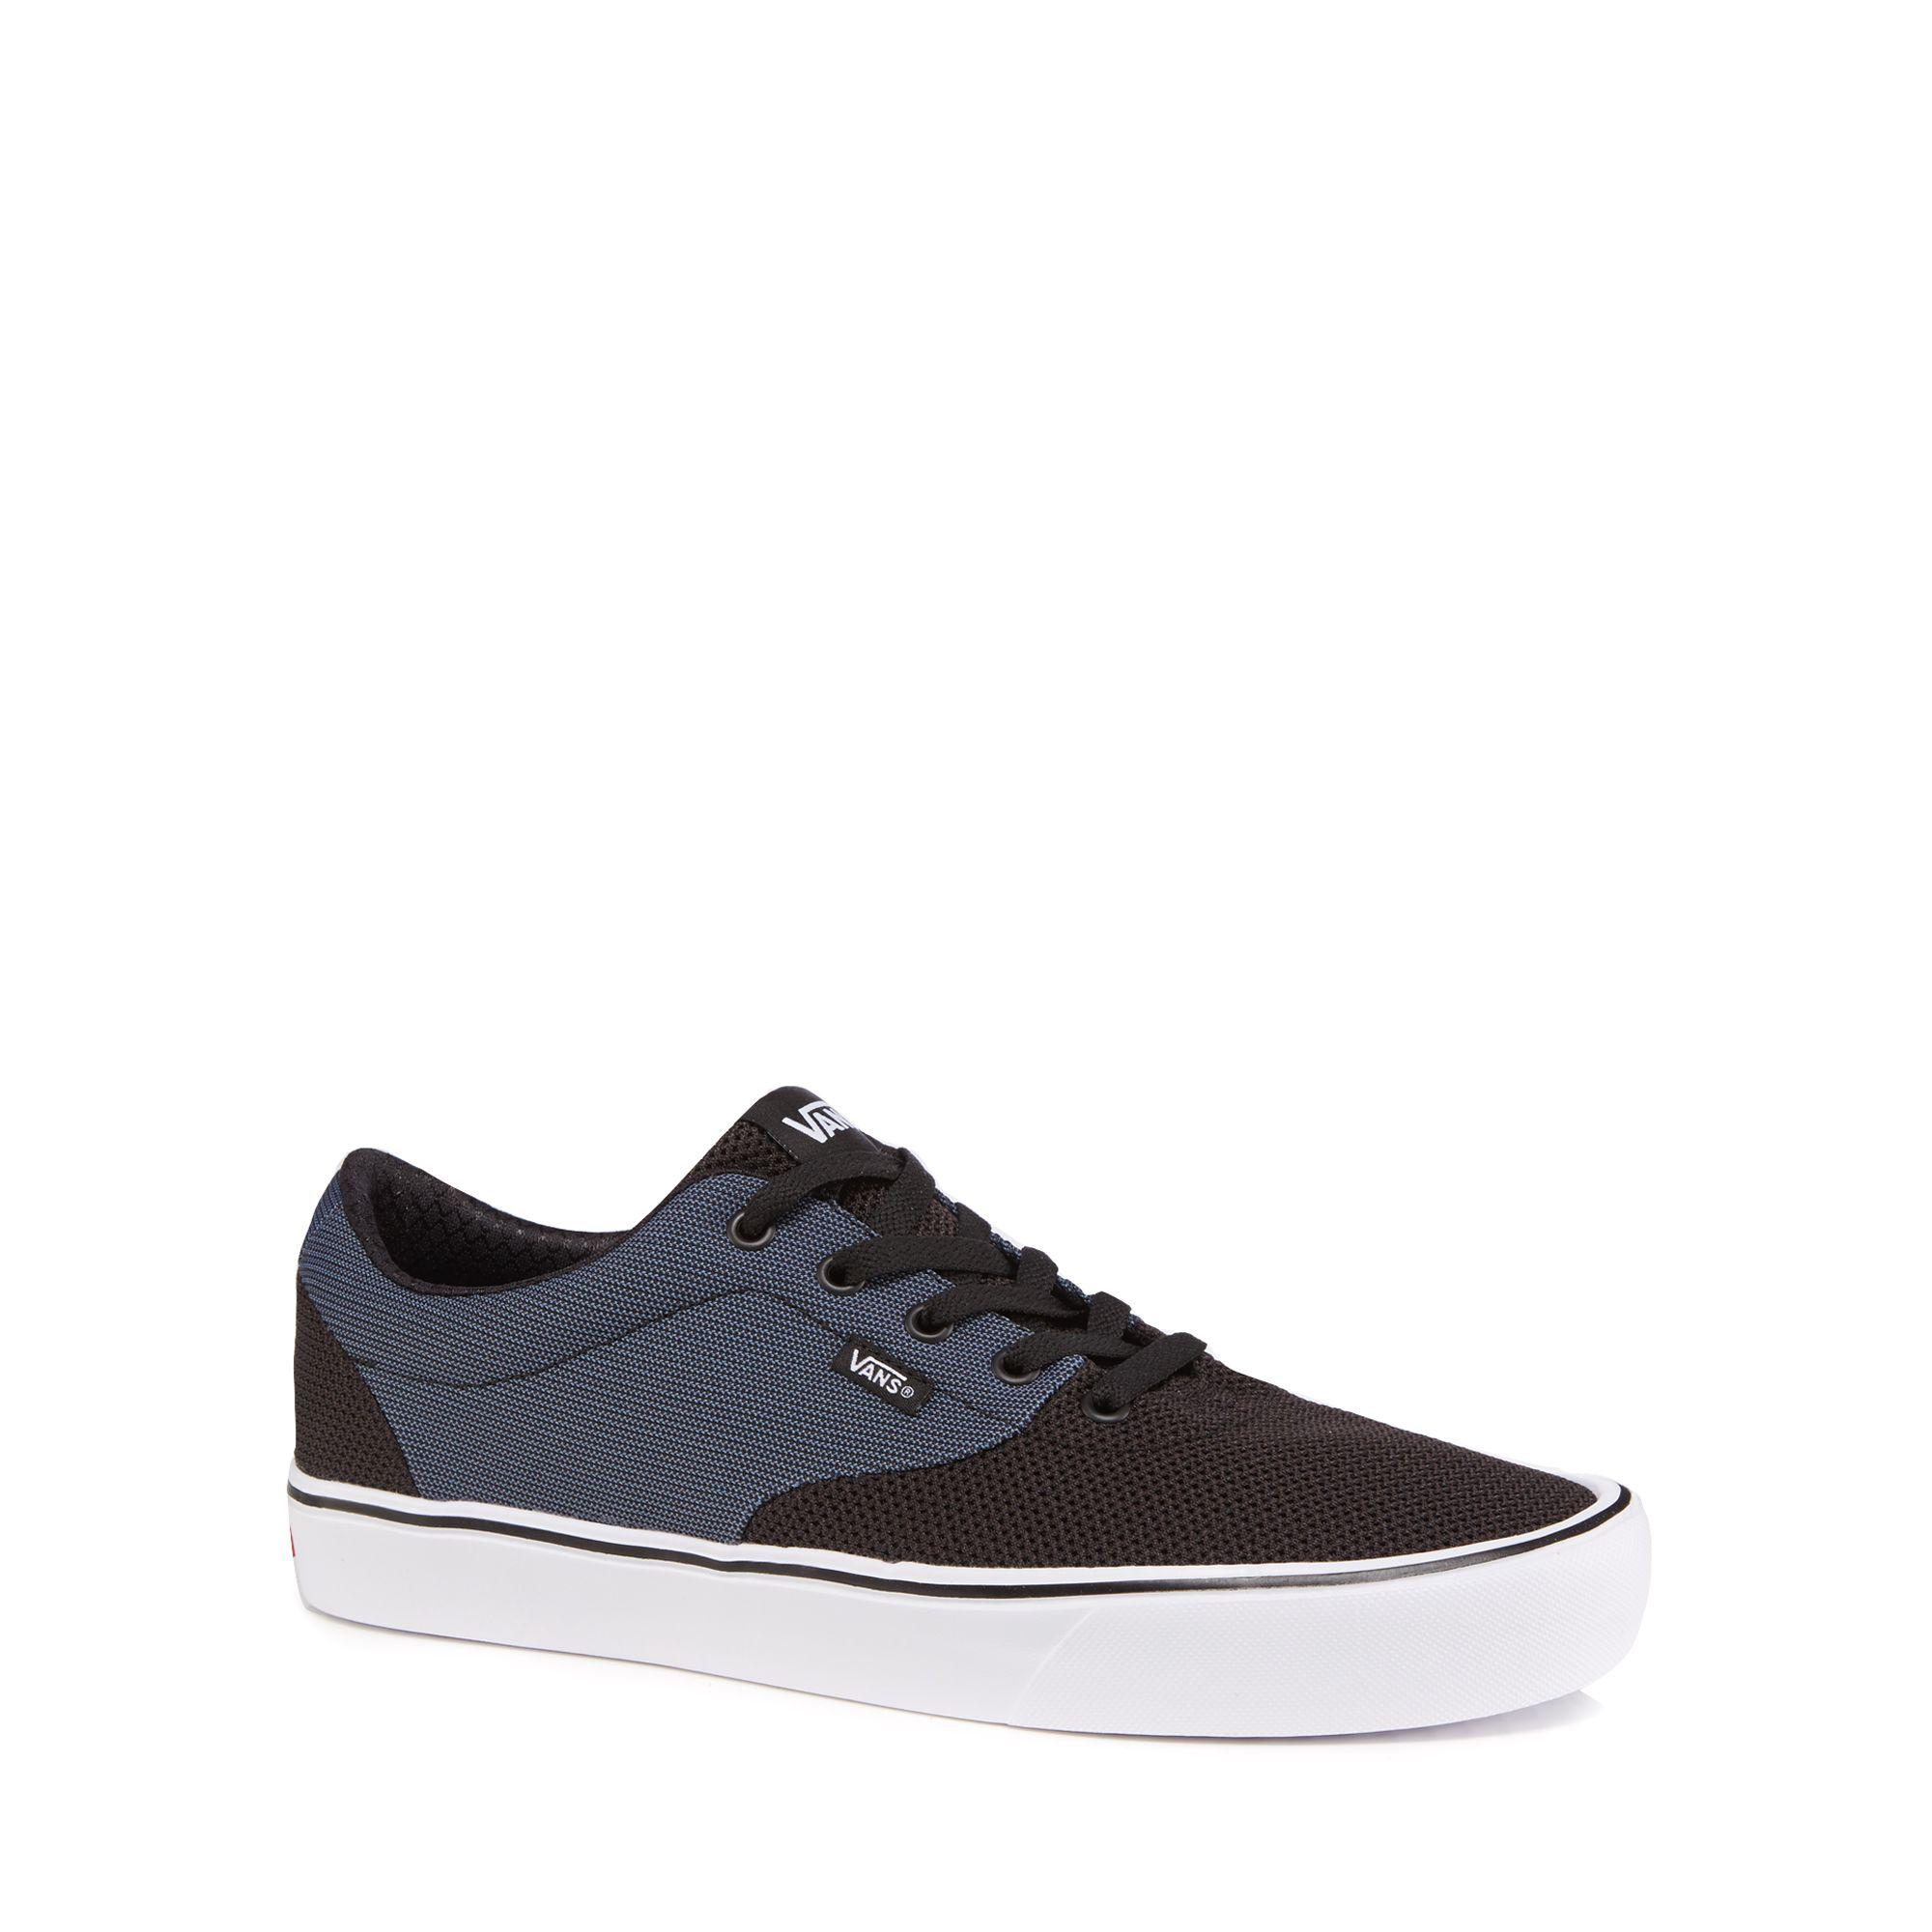 Navy 'Lautner Lite' lace up trainers buy cheap get to buy outlet footlocker finishline JxVJvQuQ